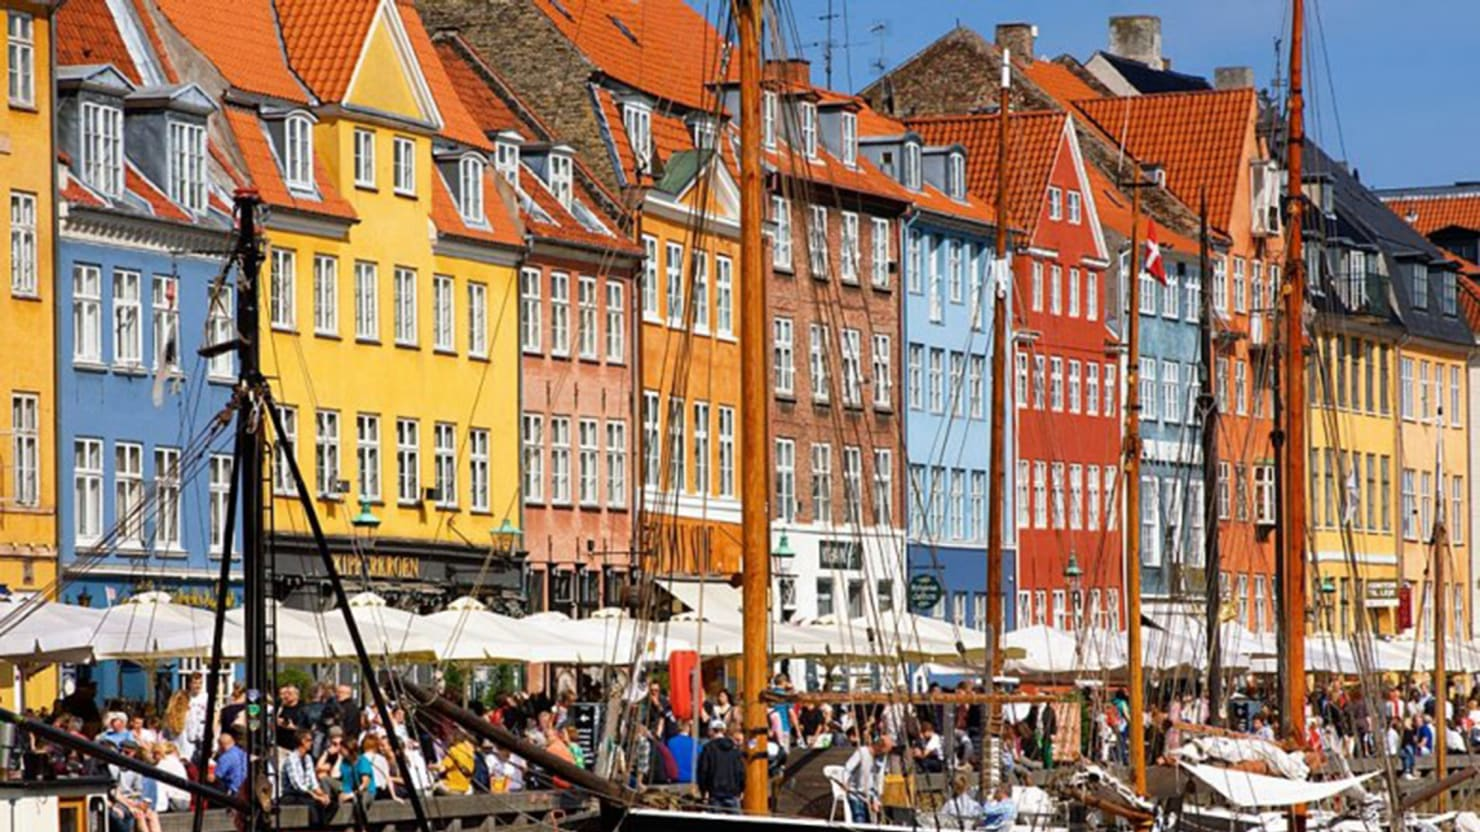 The Most Colorful Cities in the World (Photos)